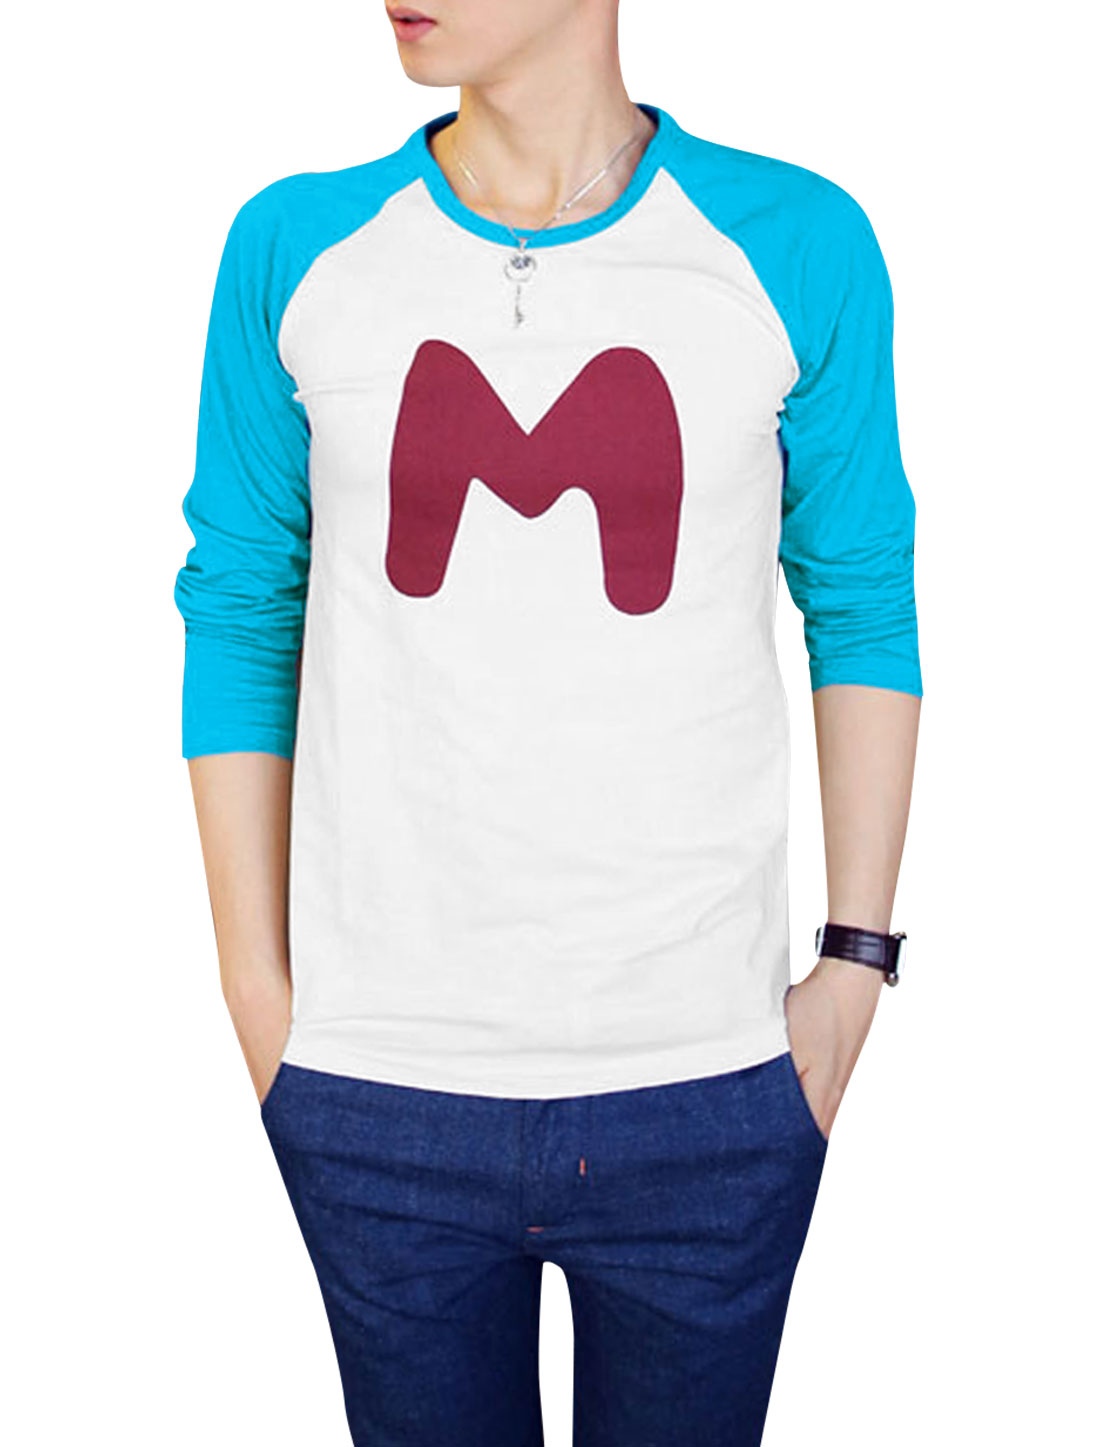 Men Round Neck Letters Pattern Color Block Casual Shirt White Blue S